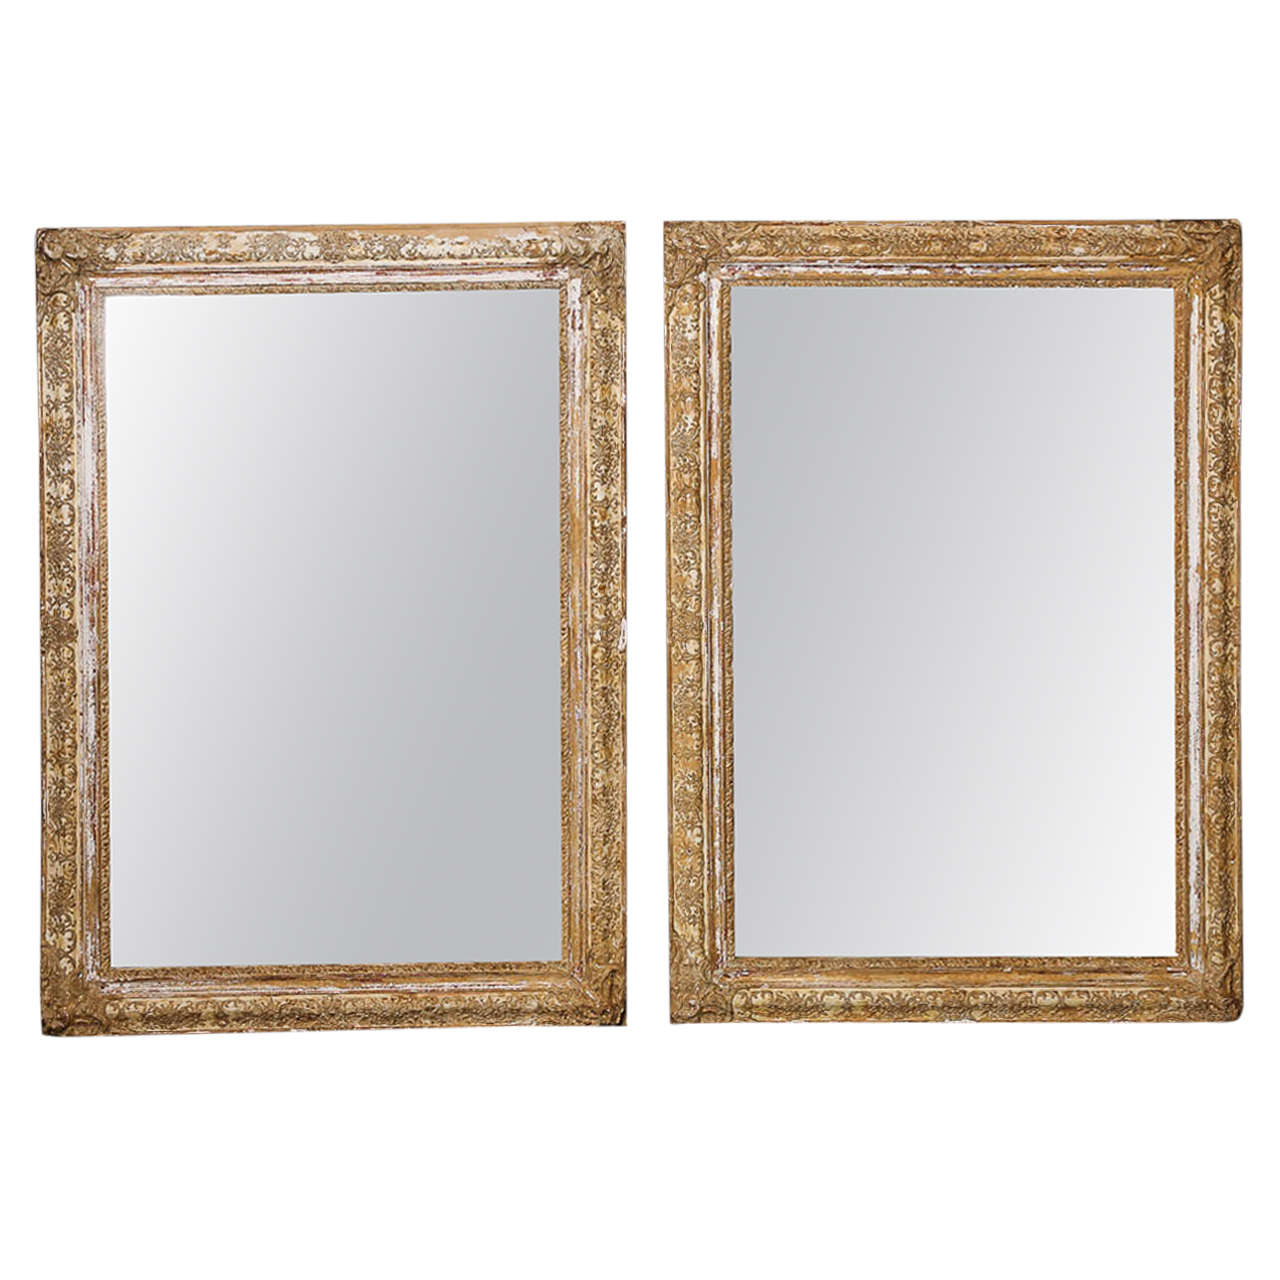 19th century french regency style mirror frames at 1stdibs for Mirror frame styles